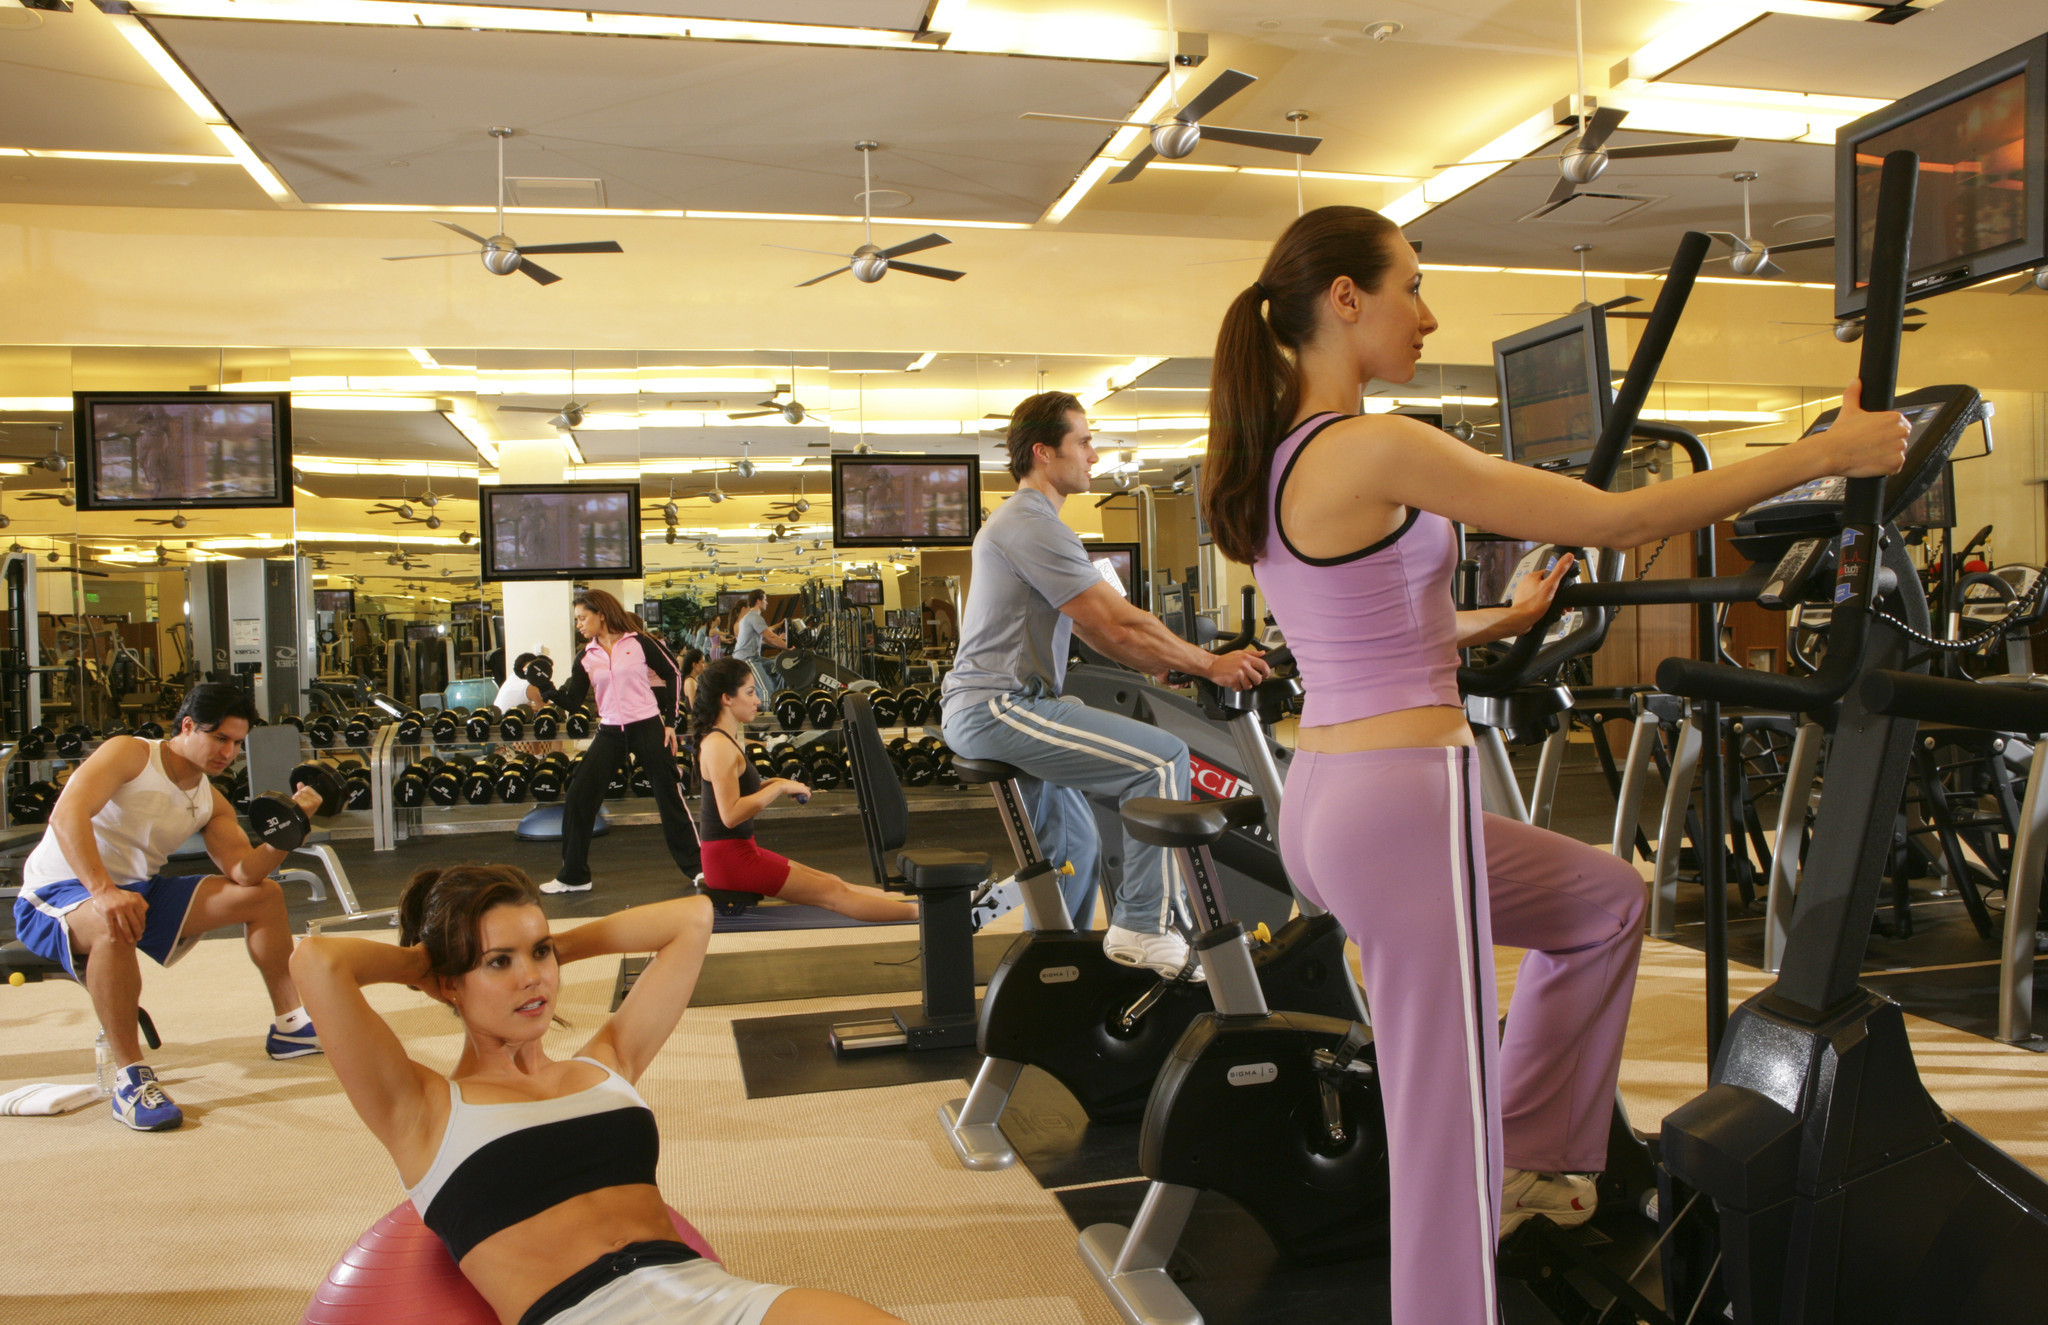 Seven Million Sign Ups >> Seven ways to work out and stay healthy in Las Vegas - LA Times